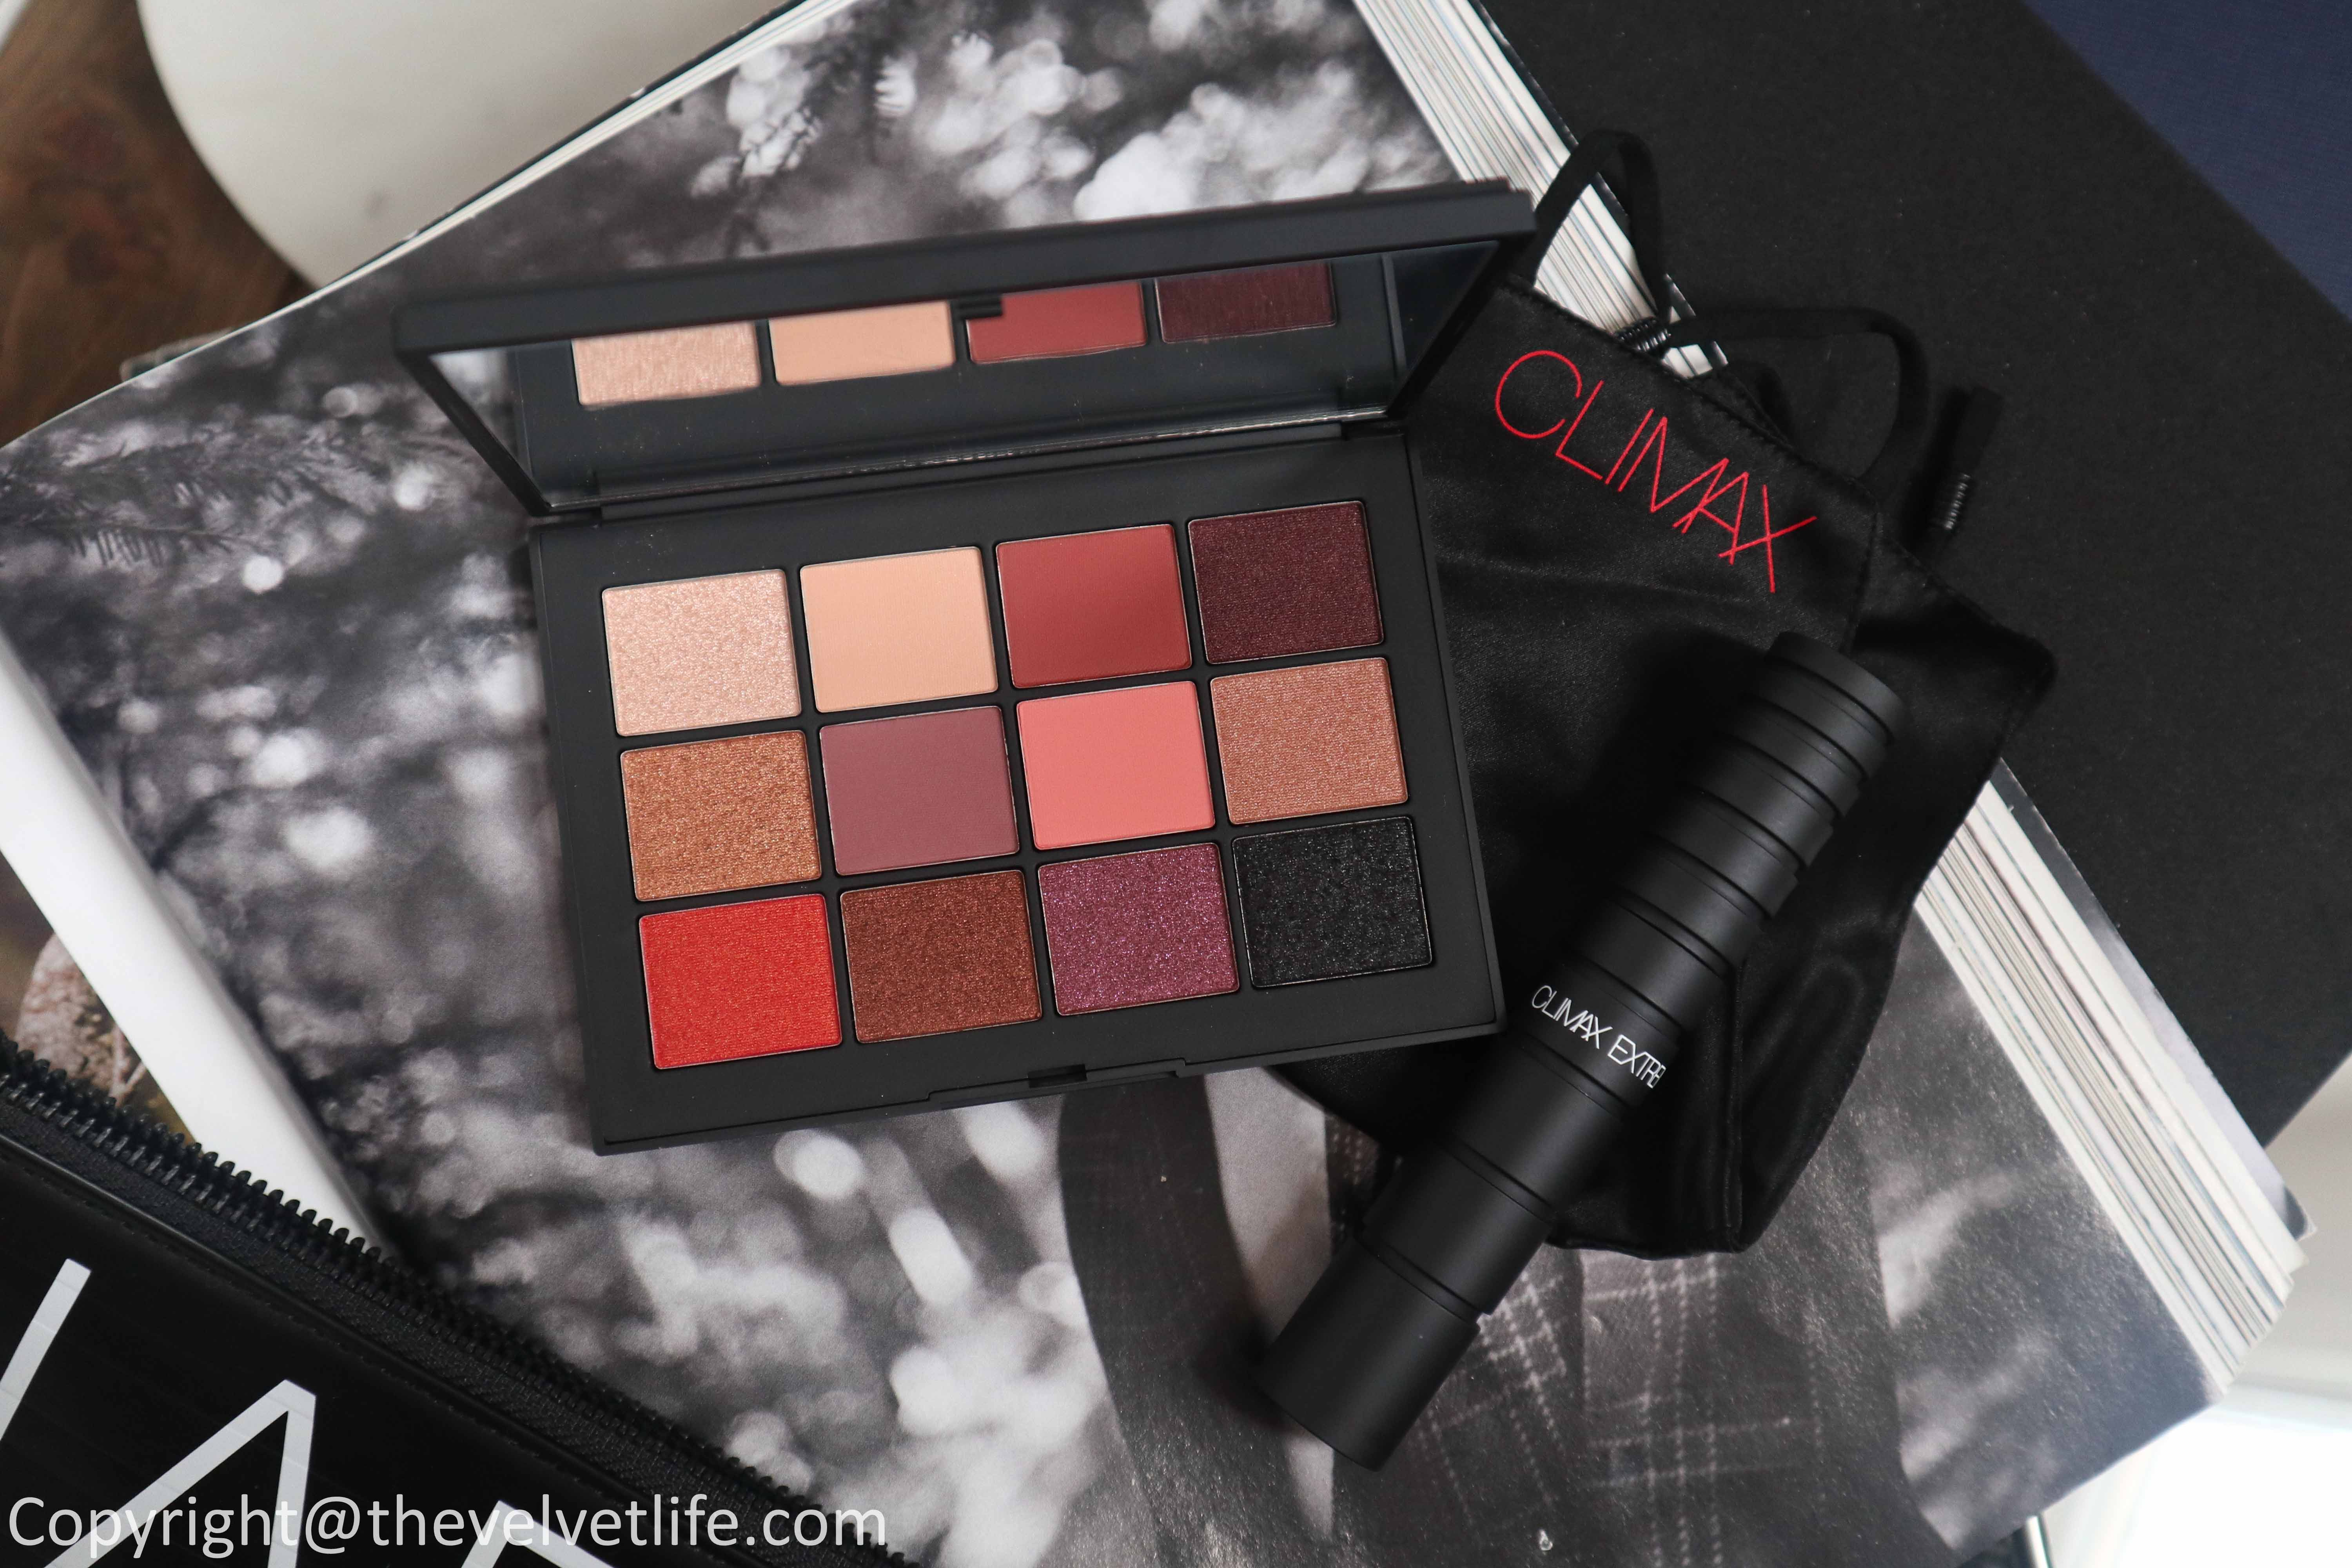 Nars Extreme Effects Eyeshadow Palette review swatches, Climax Extreme Mascara